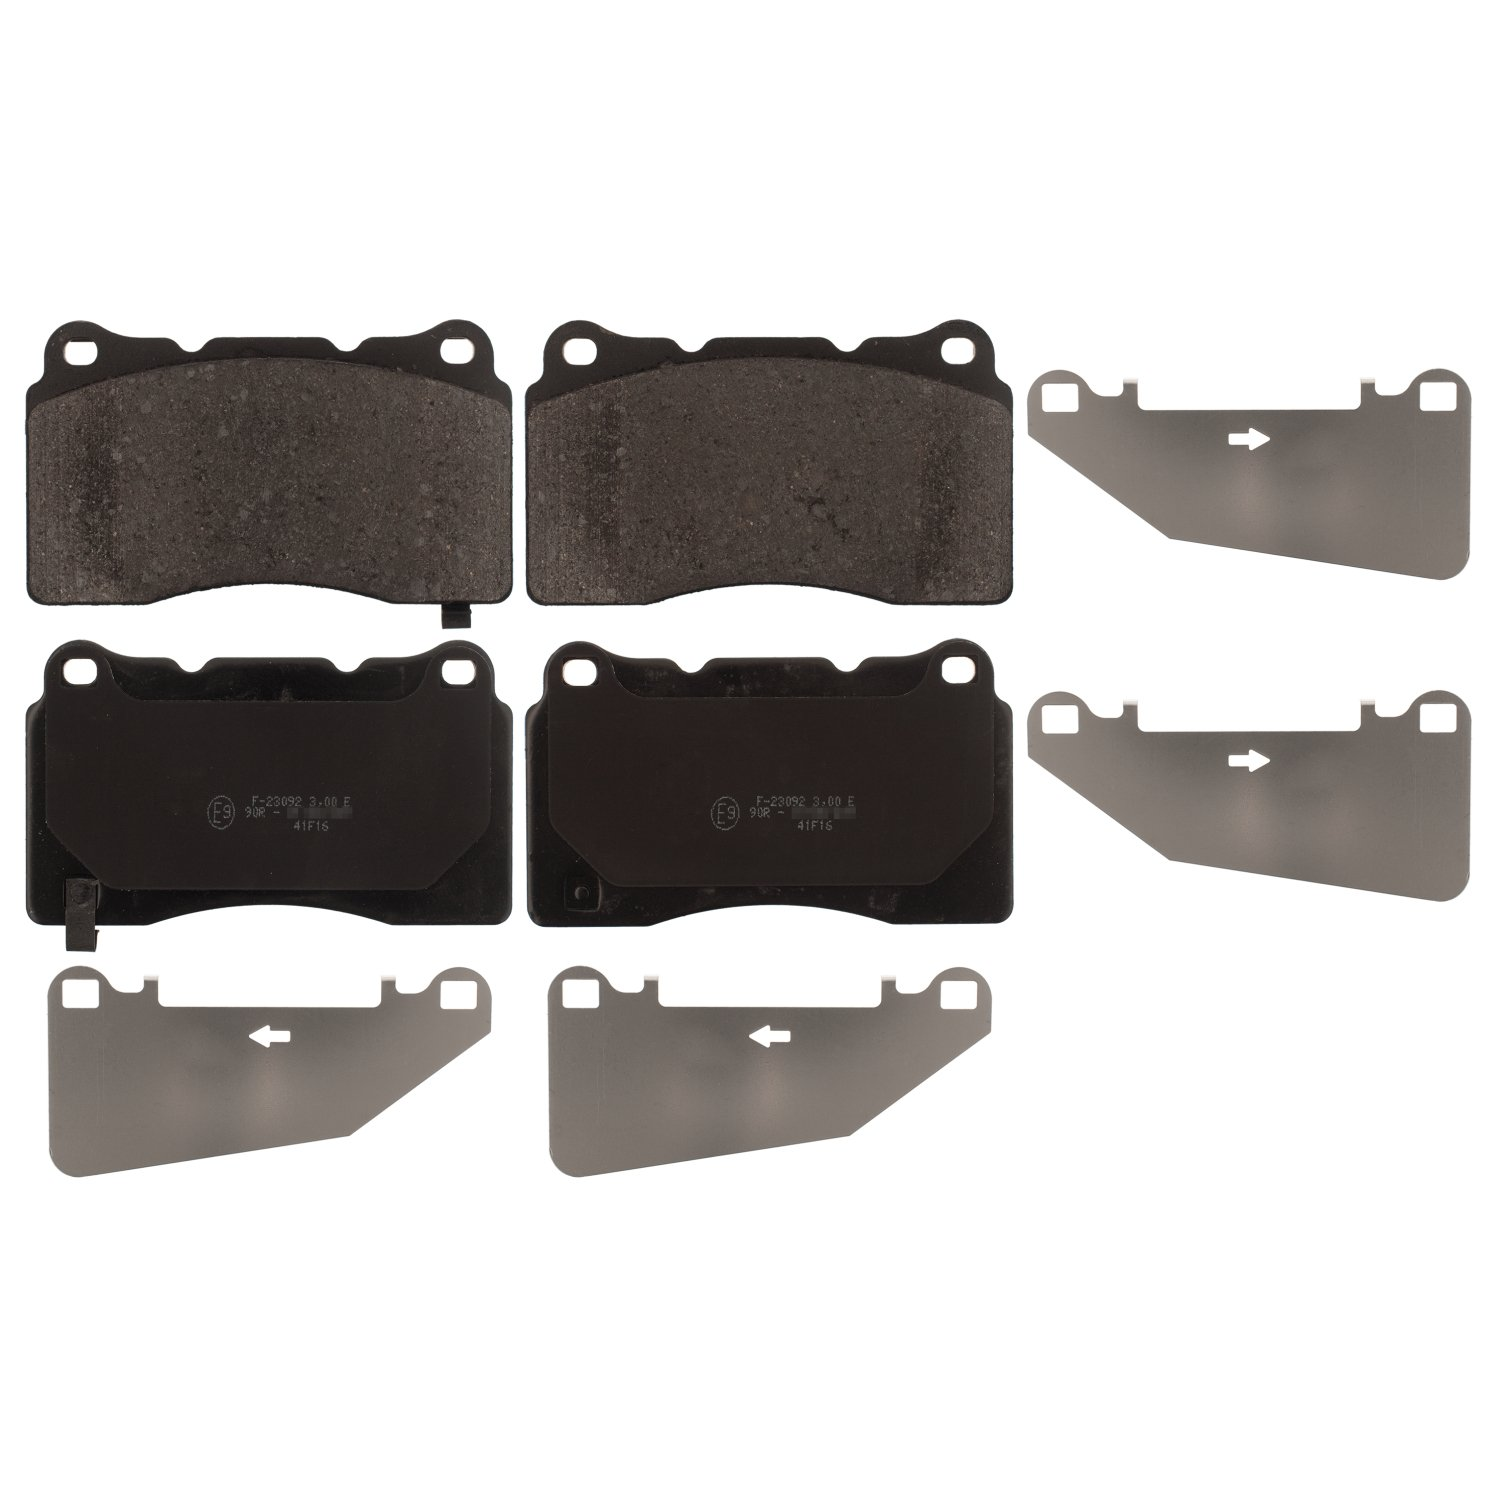 Borg /& Beck BBP1971 Front Brake Pads Brembo Includes Wear Indicators//Leads